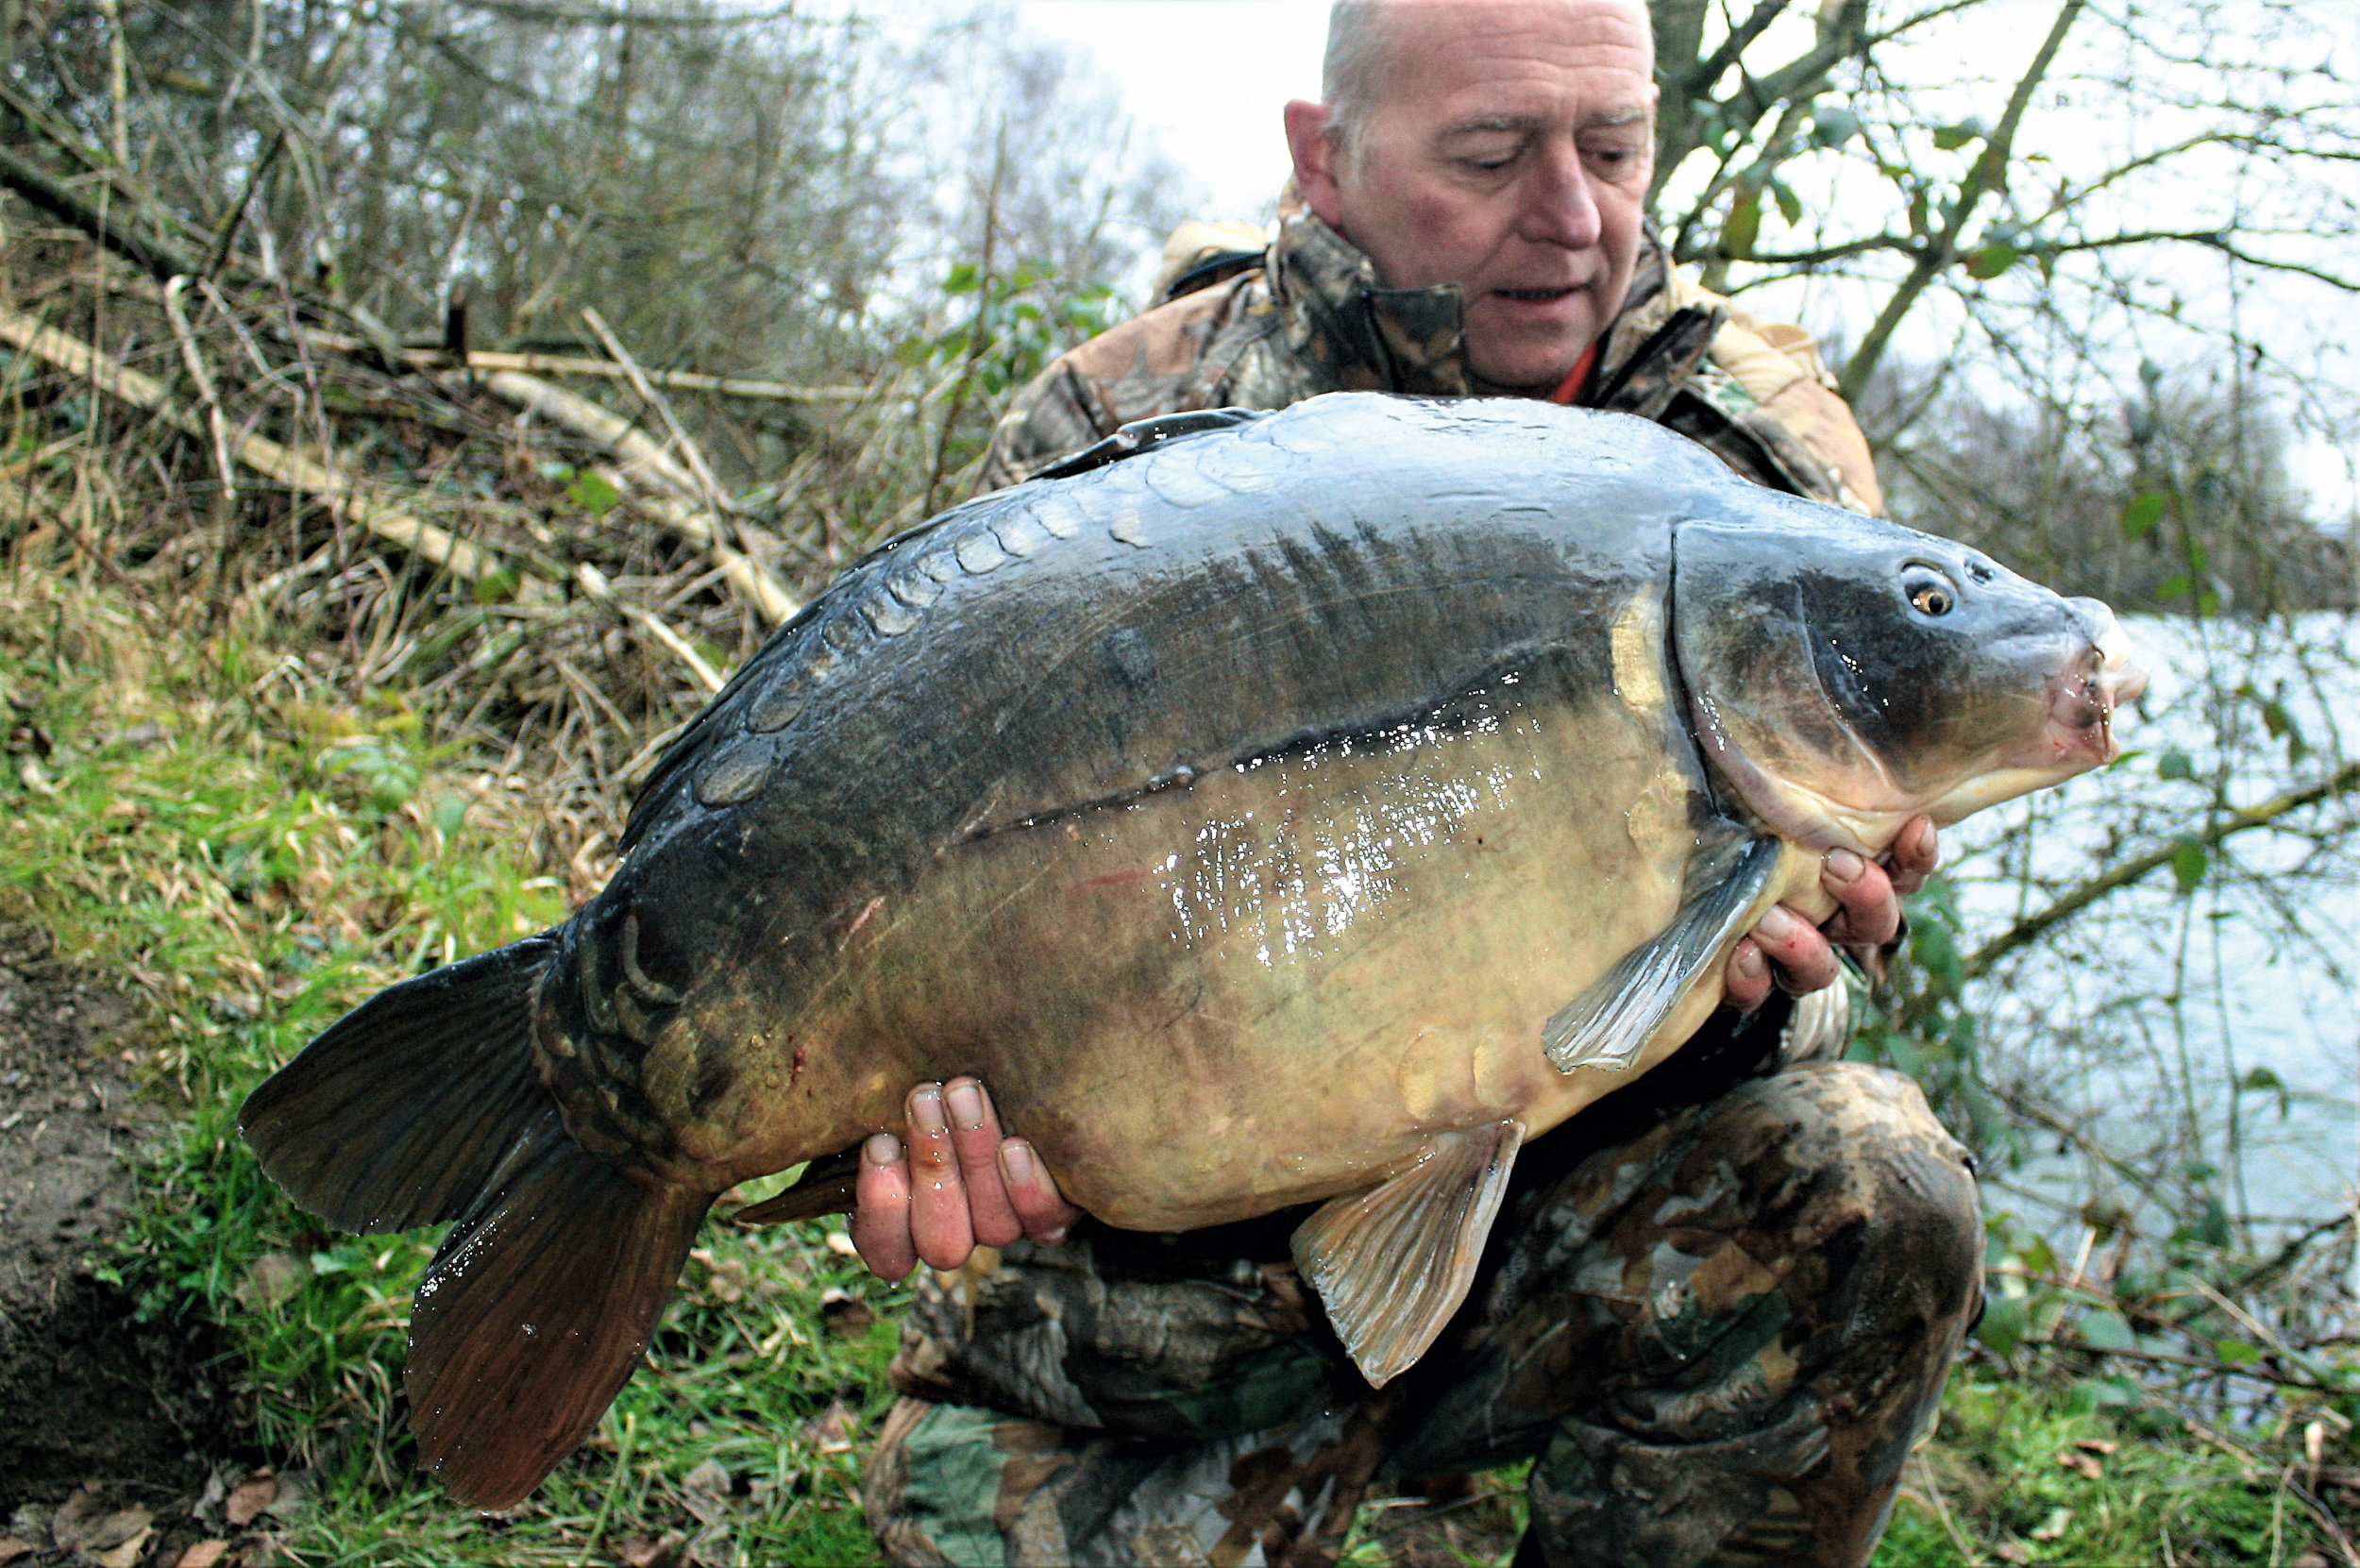 The carp caught in the picture was caught using small PVA mesh bag of rock salt, hooked onto the rig prior to casting, to draw attention to the hookbait